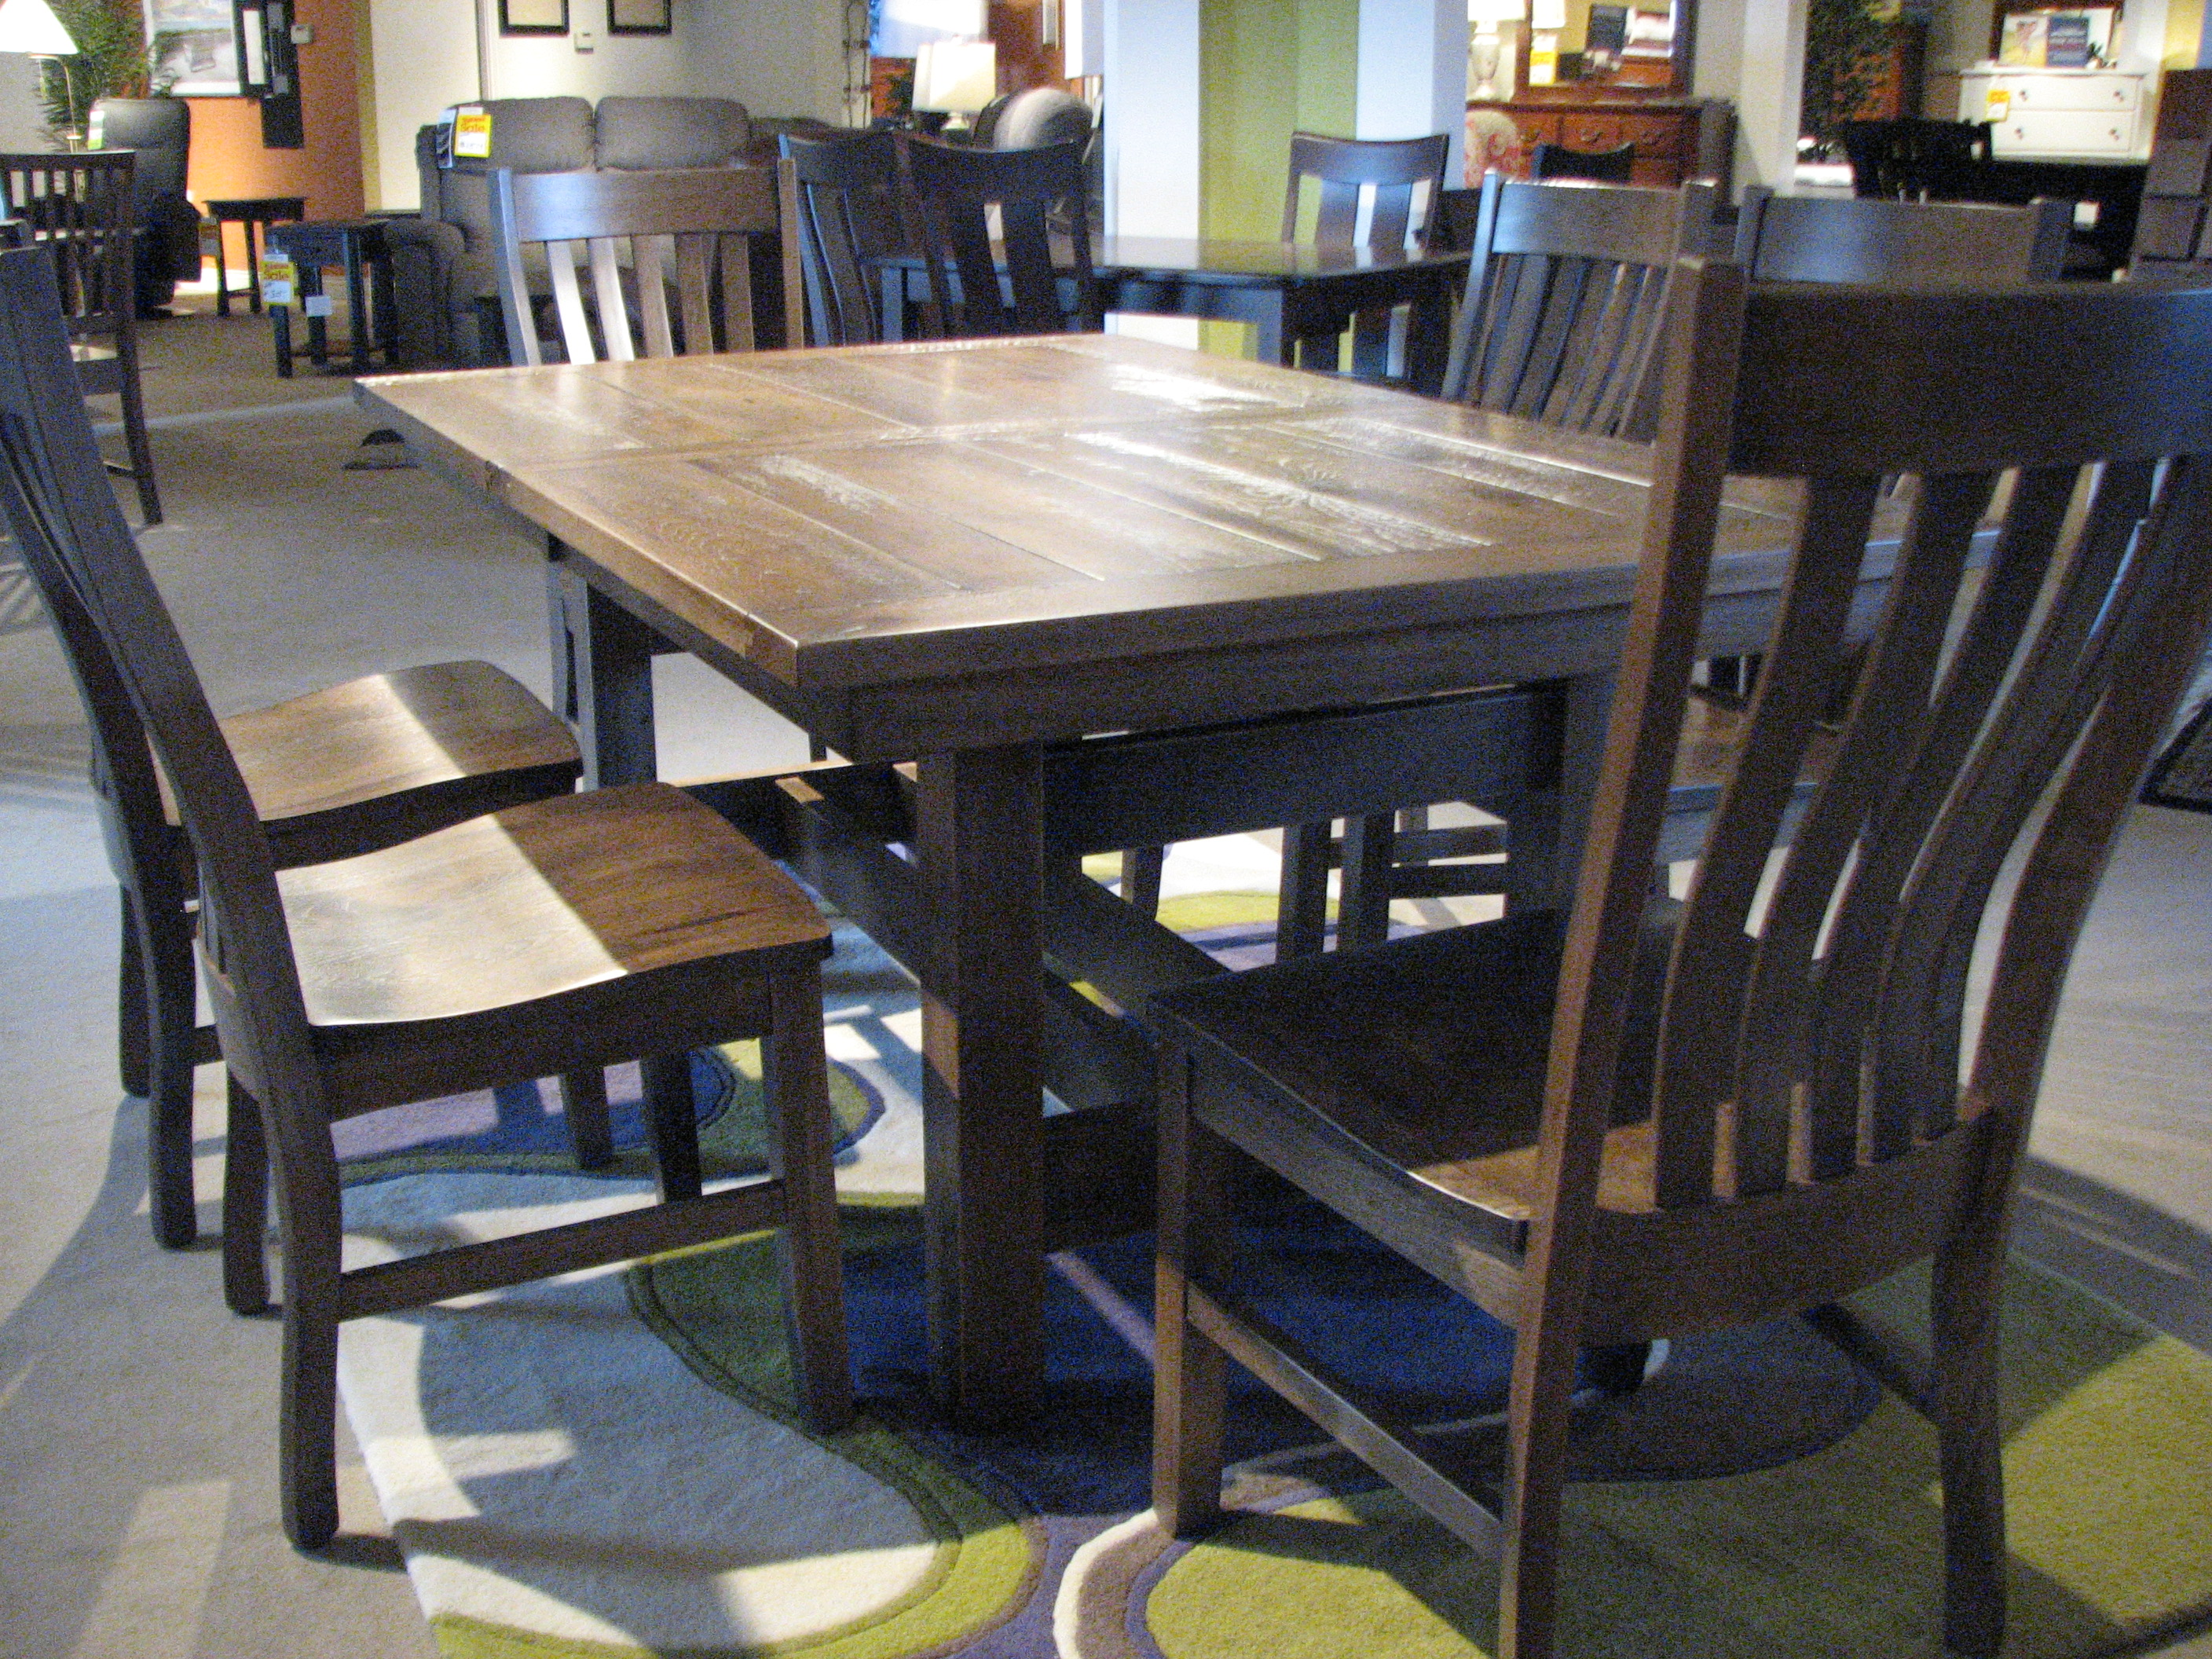 All Wood Dining Room Table New Trailway Rustic Hickory Dining set with table top details.